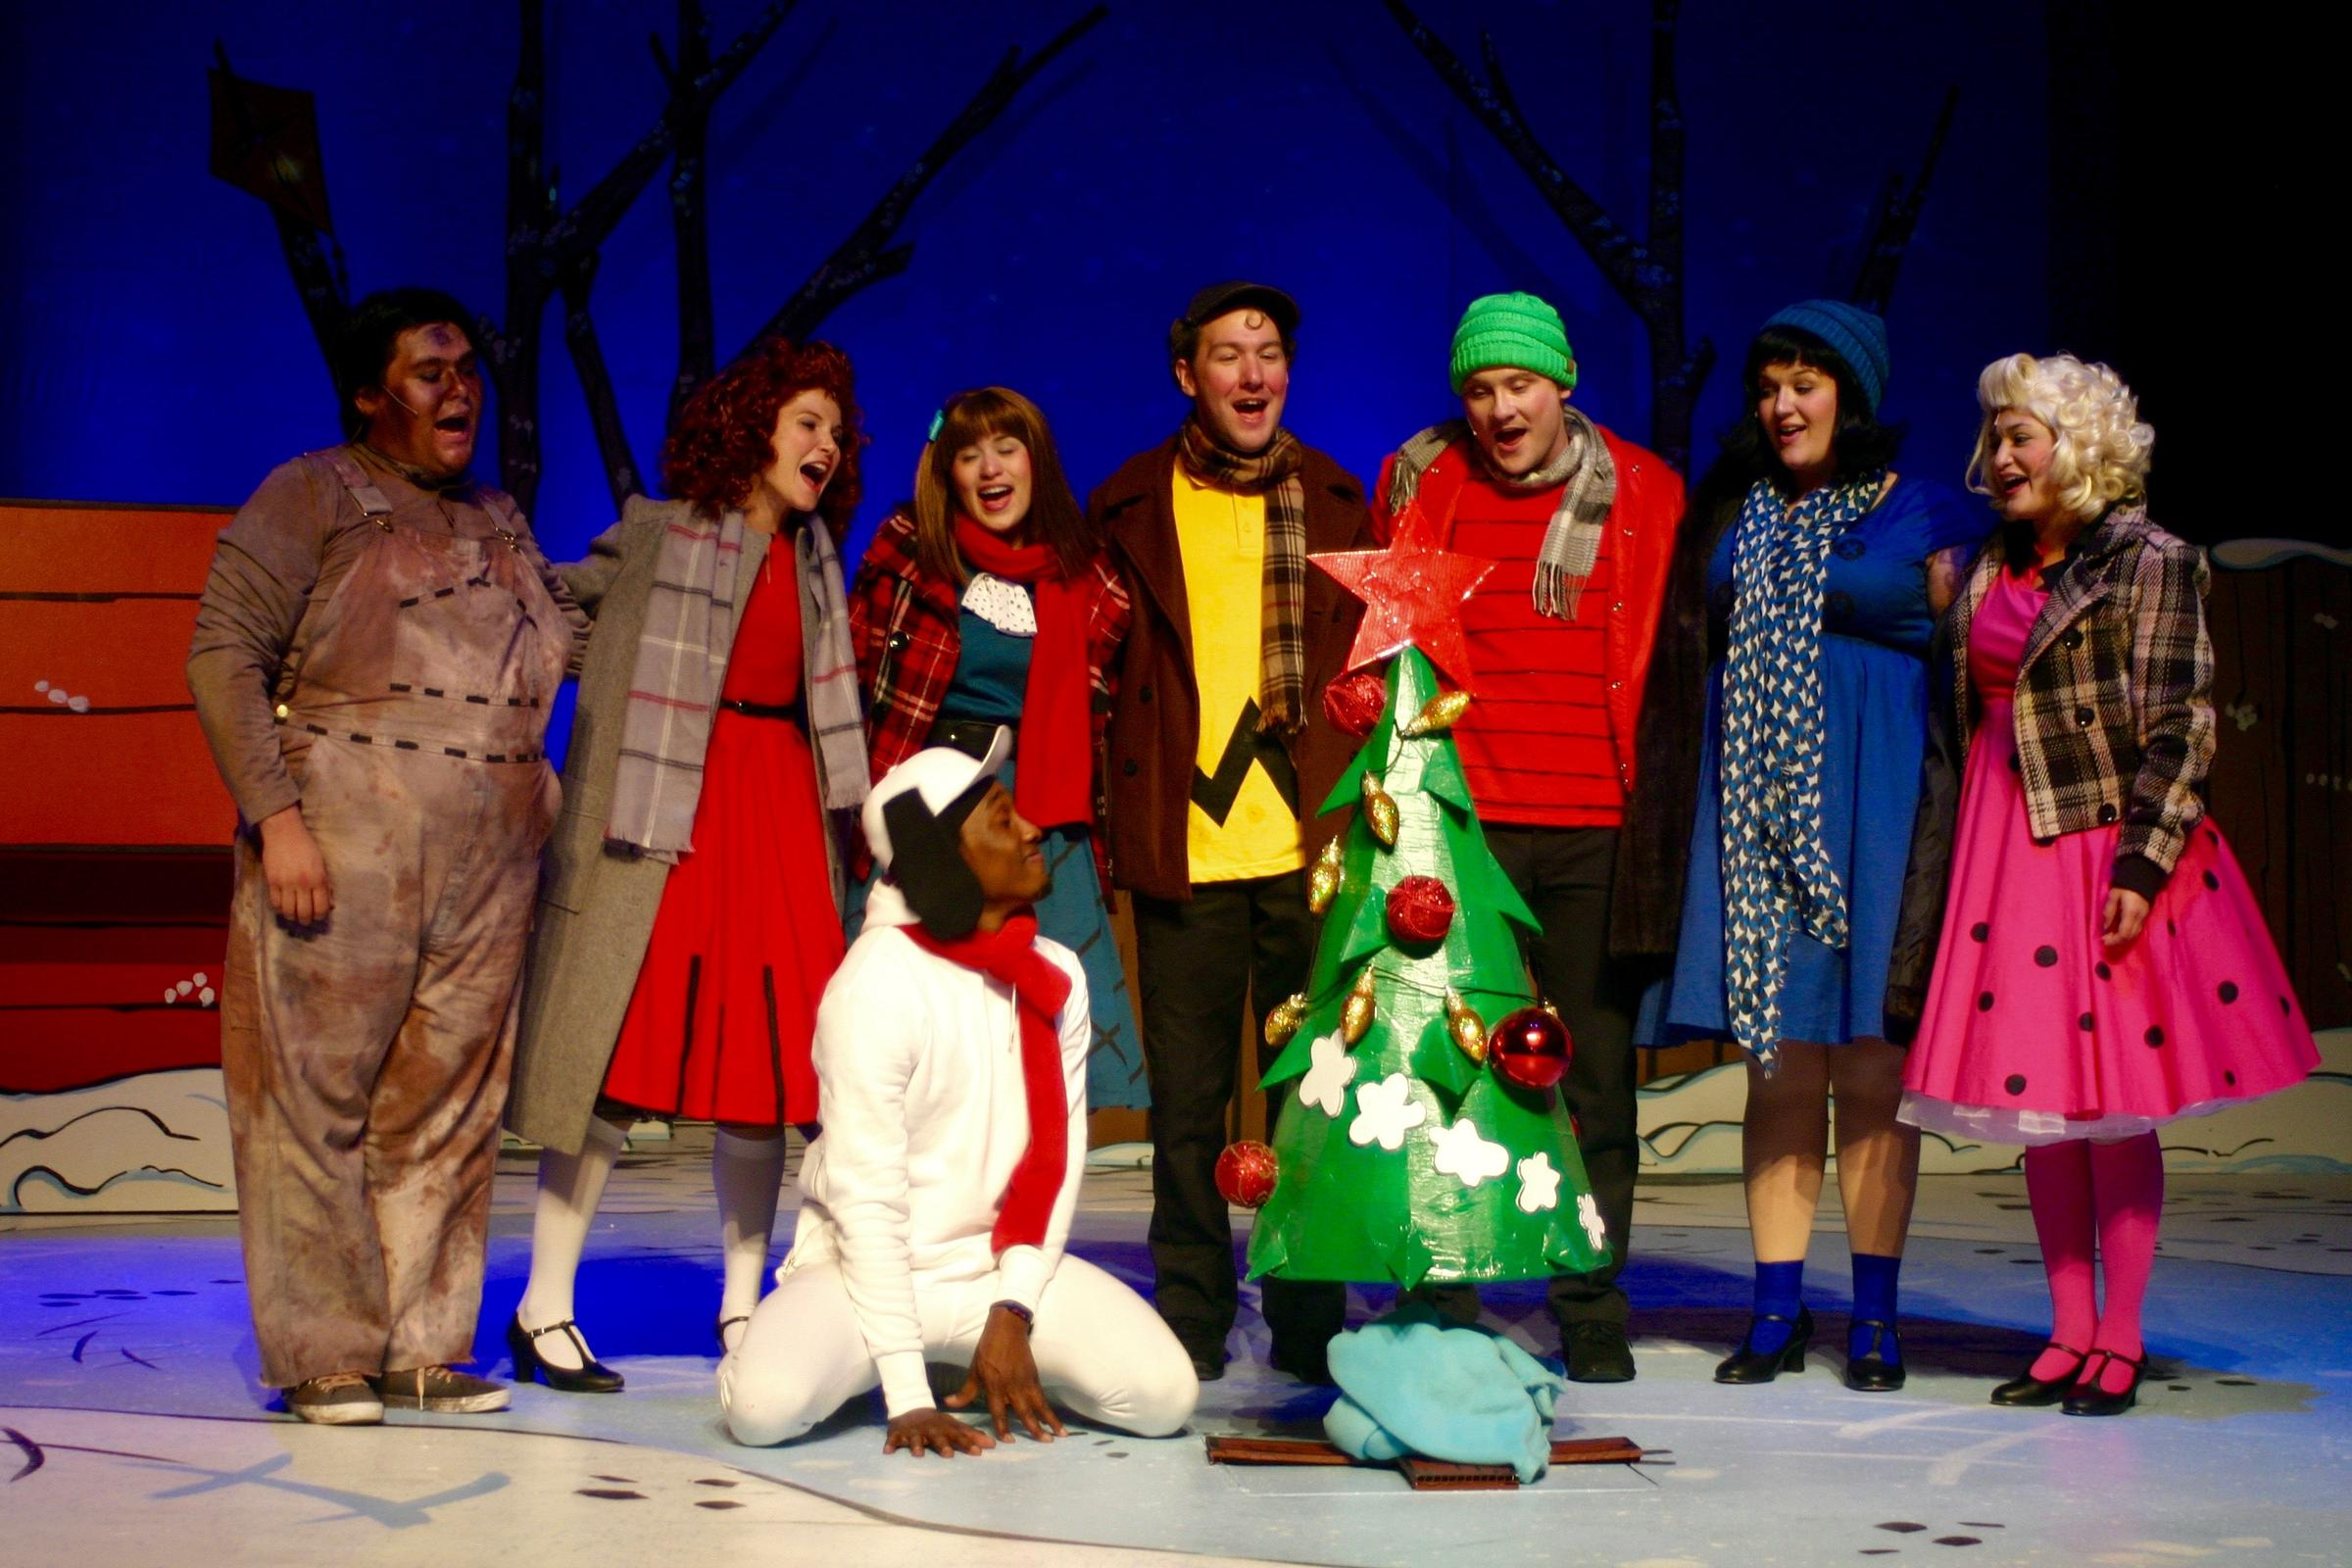 A Charlie Brown Christmas Play.Autism Accomodated With Sensory Friendly Productions Texas